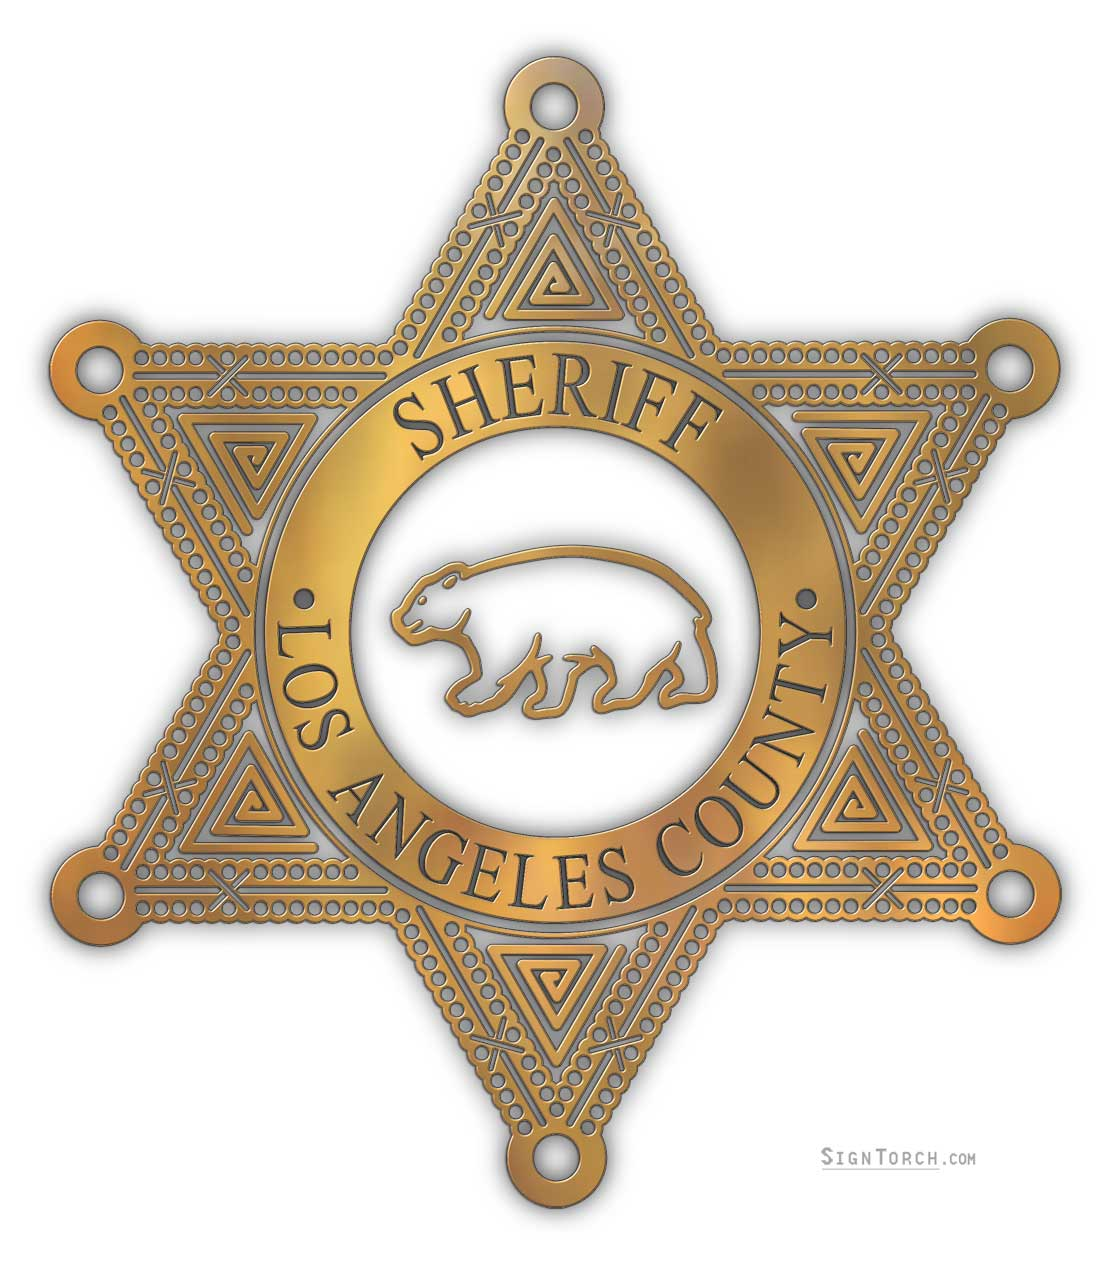 la_county_sheriff_badge2.